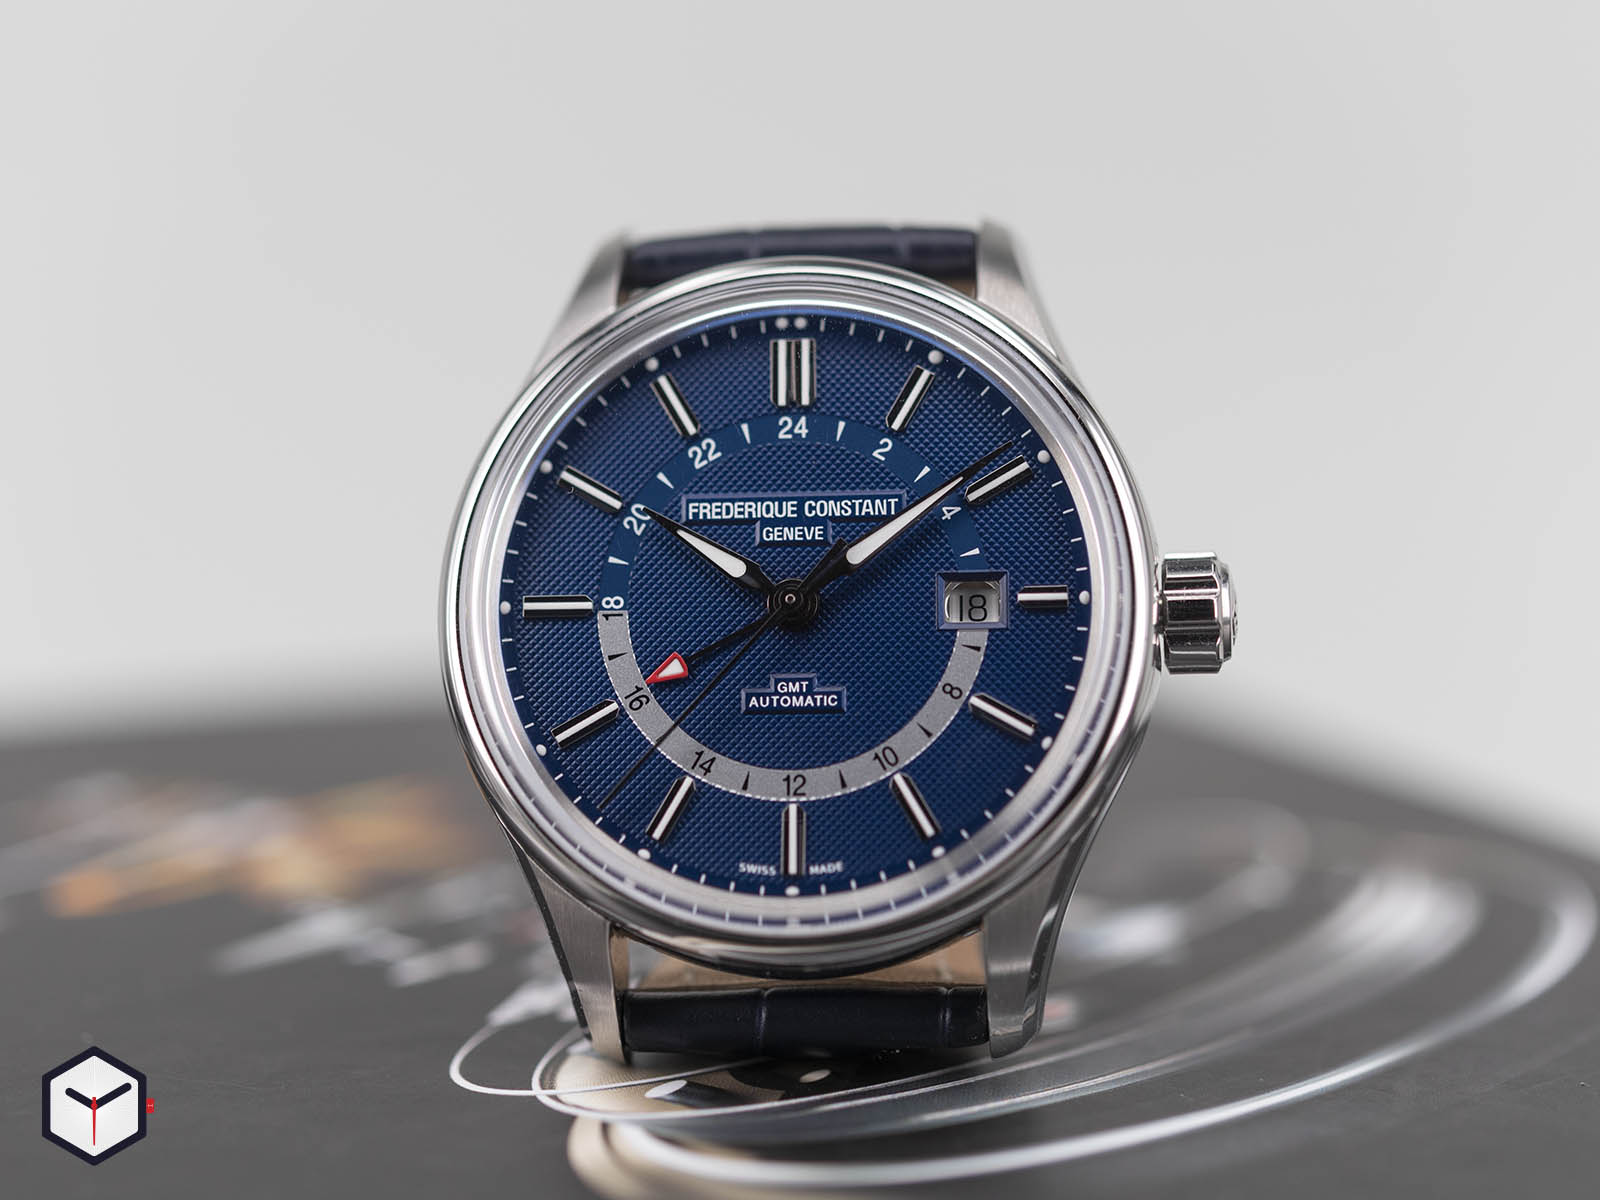 fc-350nt4h6-frederique-constant-yacht-timer-gmt-2.jpg